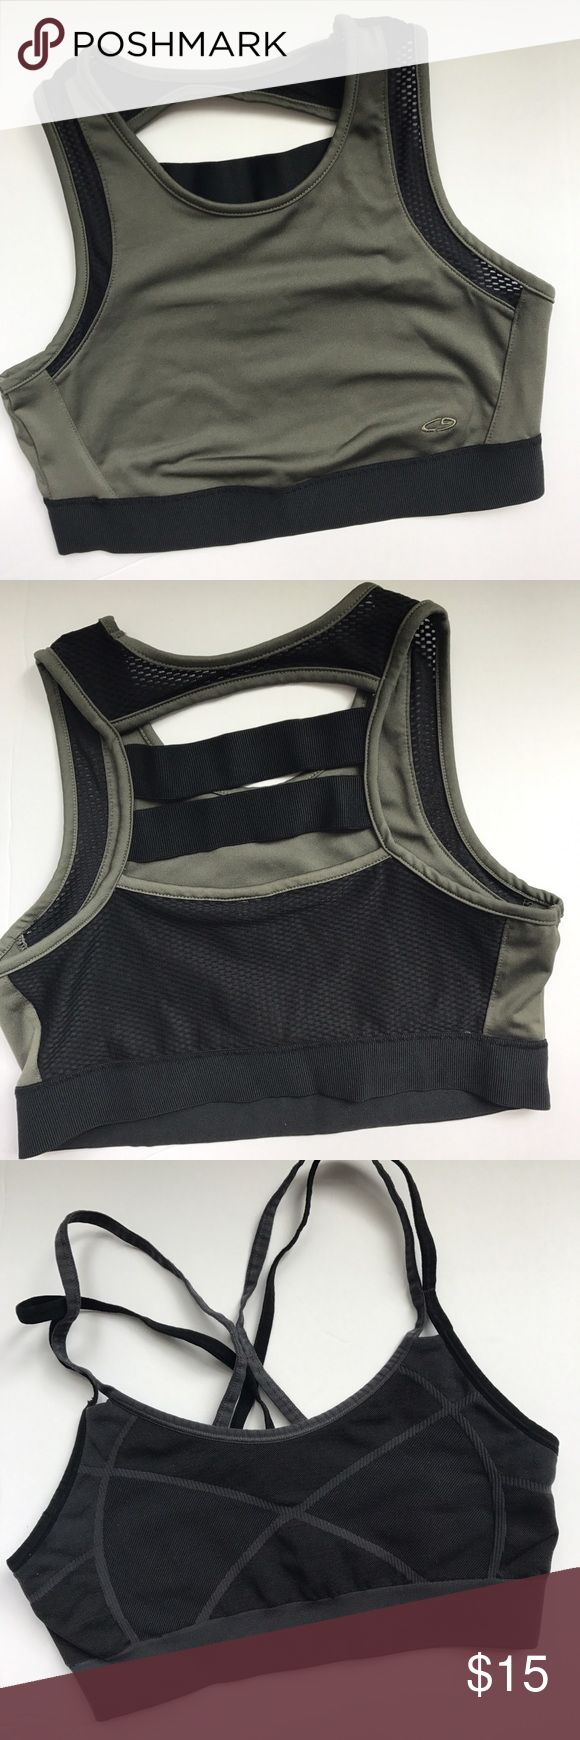 3 champion sports bras size medium 3 separate champion sport bras for the price of 1! Excellent condition. Olive green, black and blue. Champion Tops